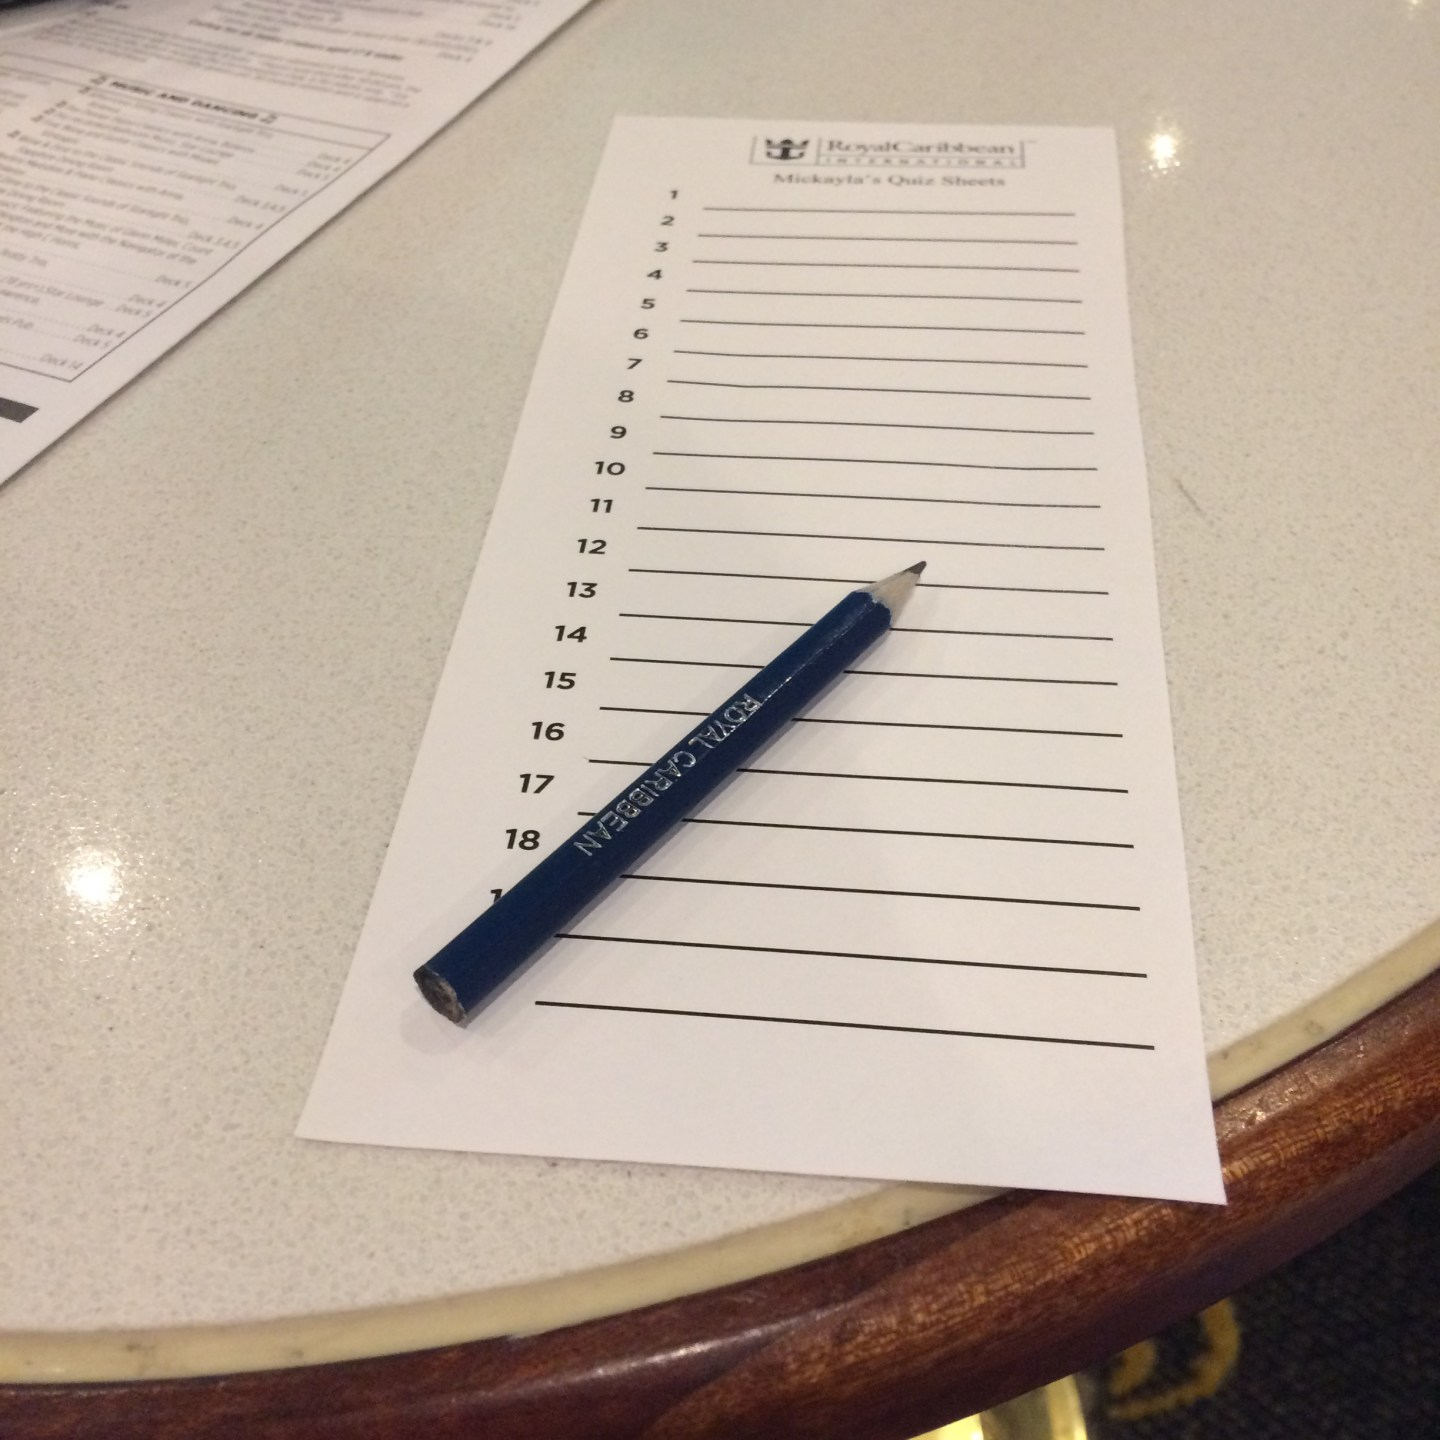 If you like quizzes, Royal Caribbean will have plenty on sea days